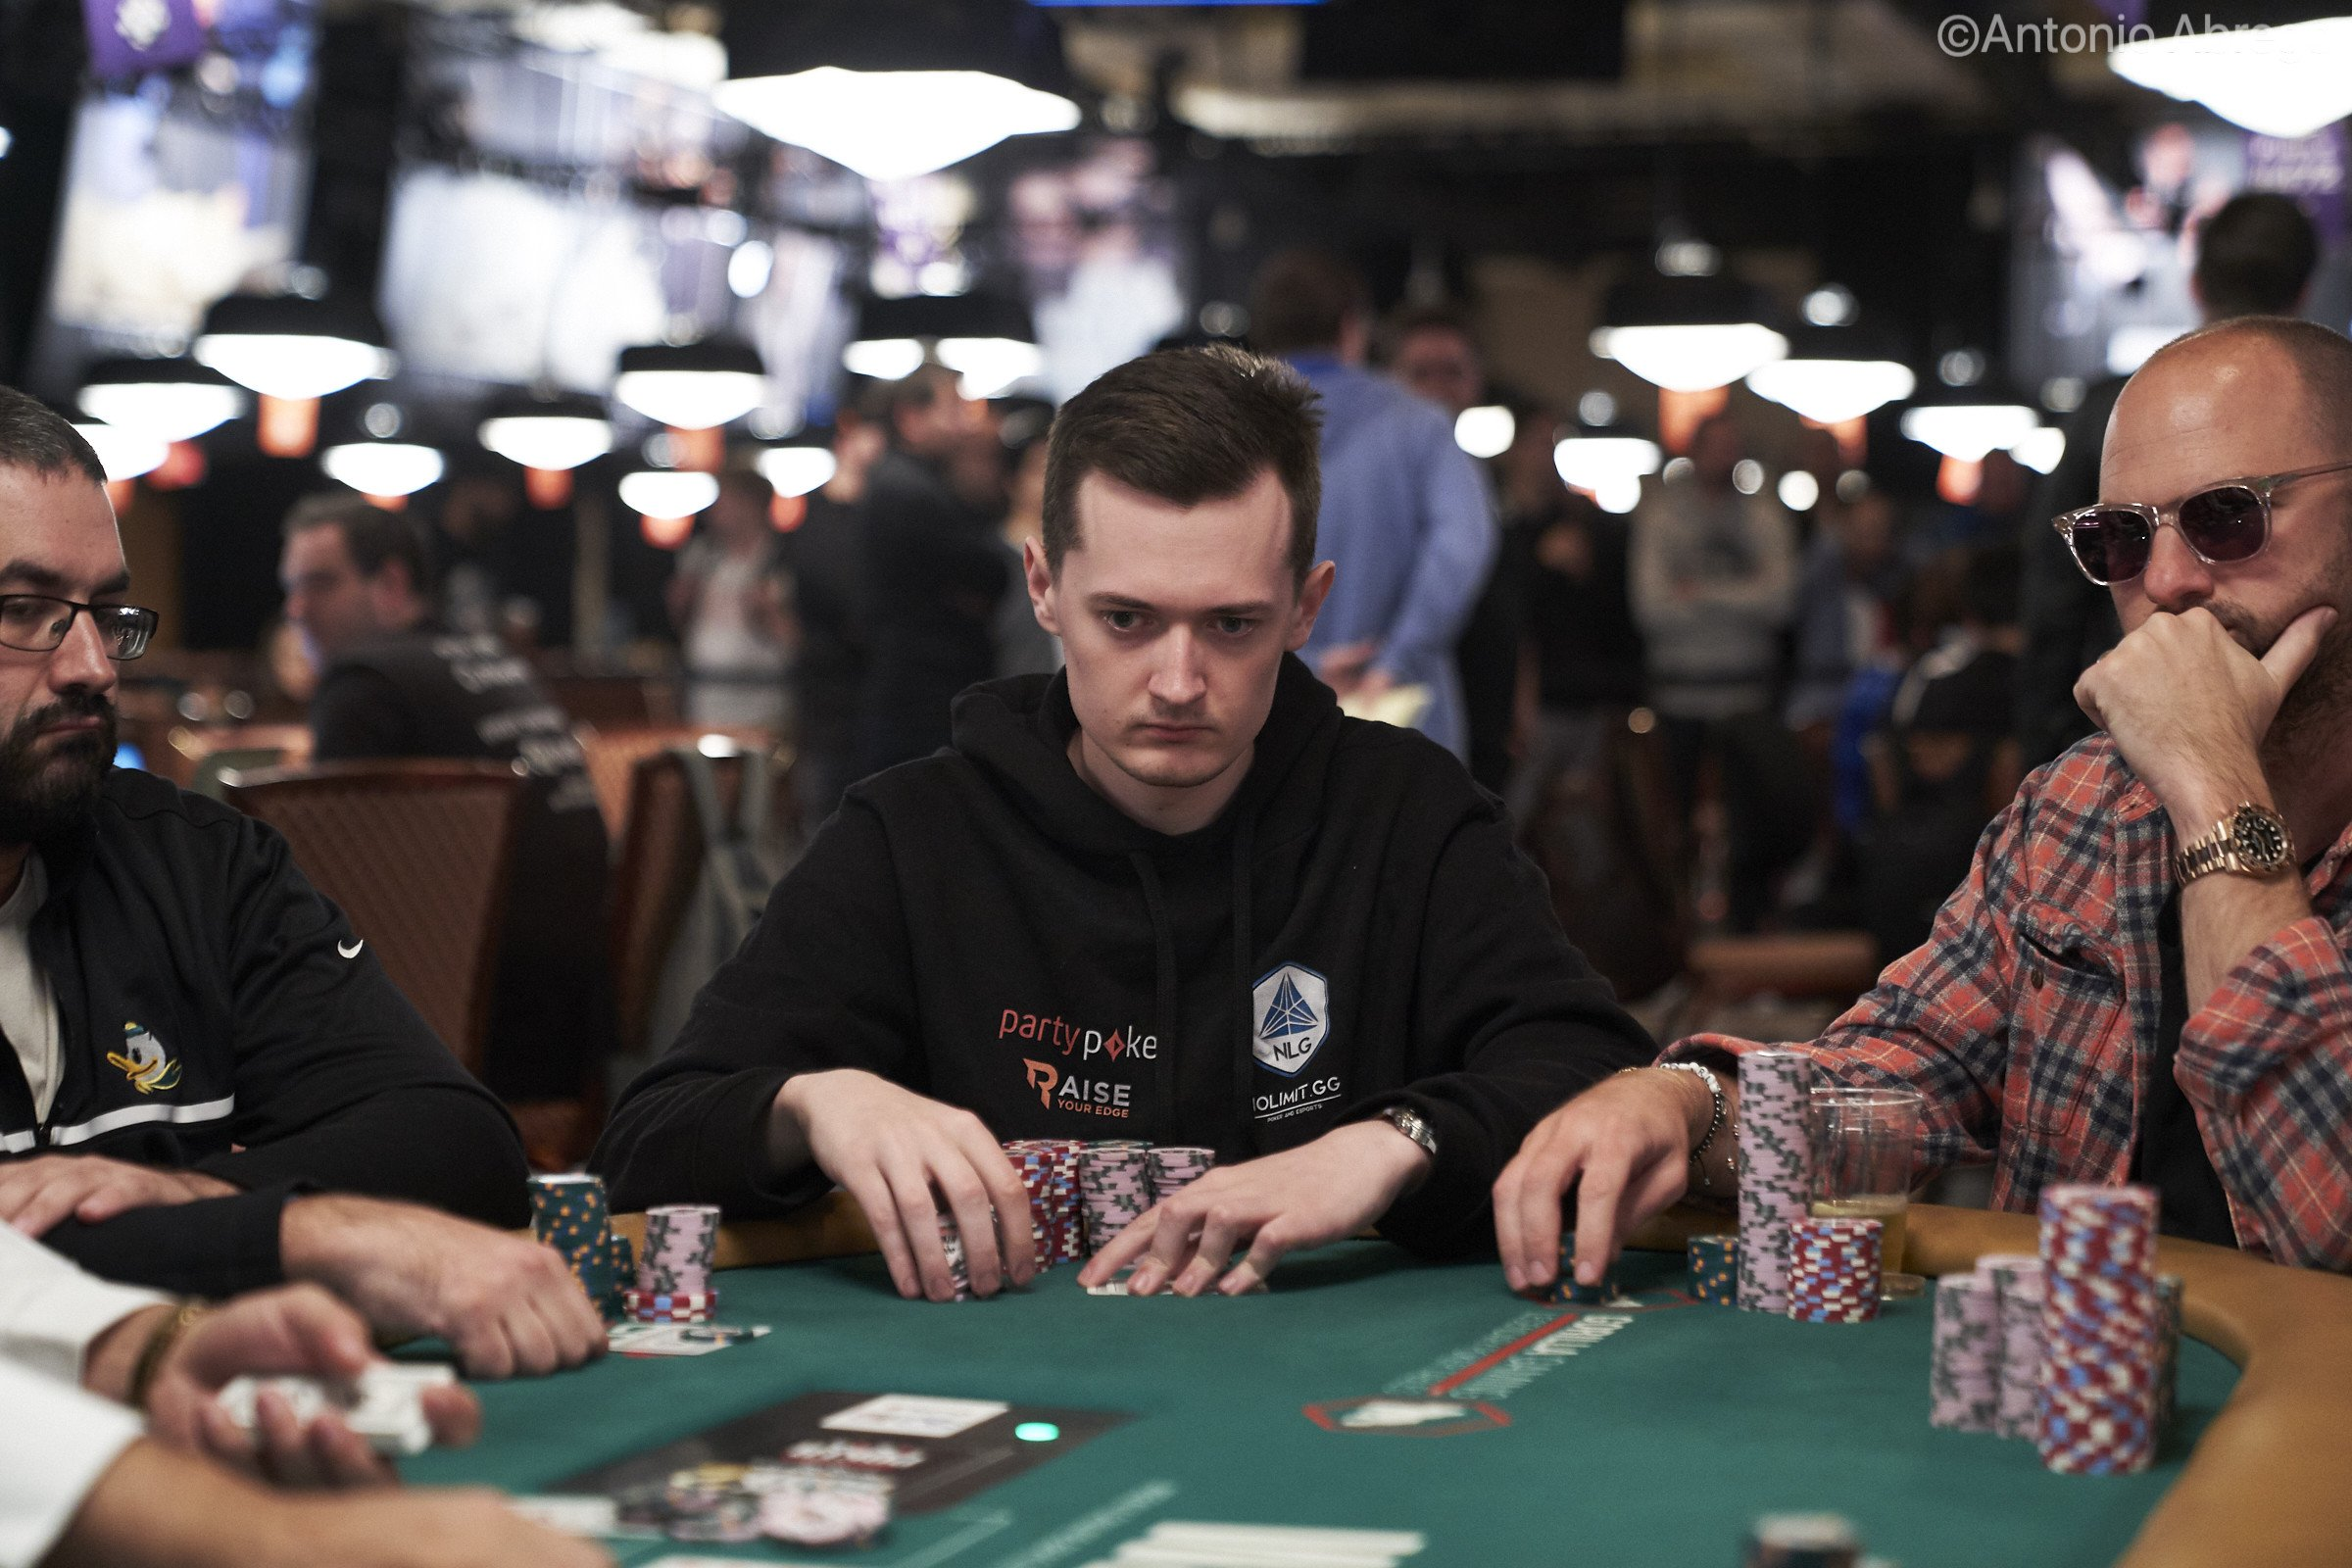 WSOP 2019: Nicholas Marchington leads the Main Event; Sam Greenwood eliminated in brutal fashion